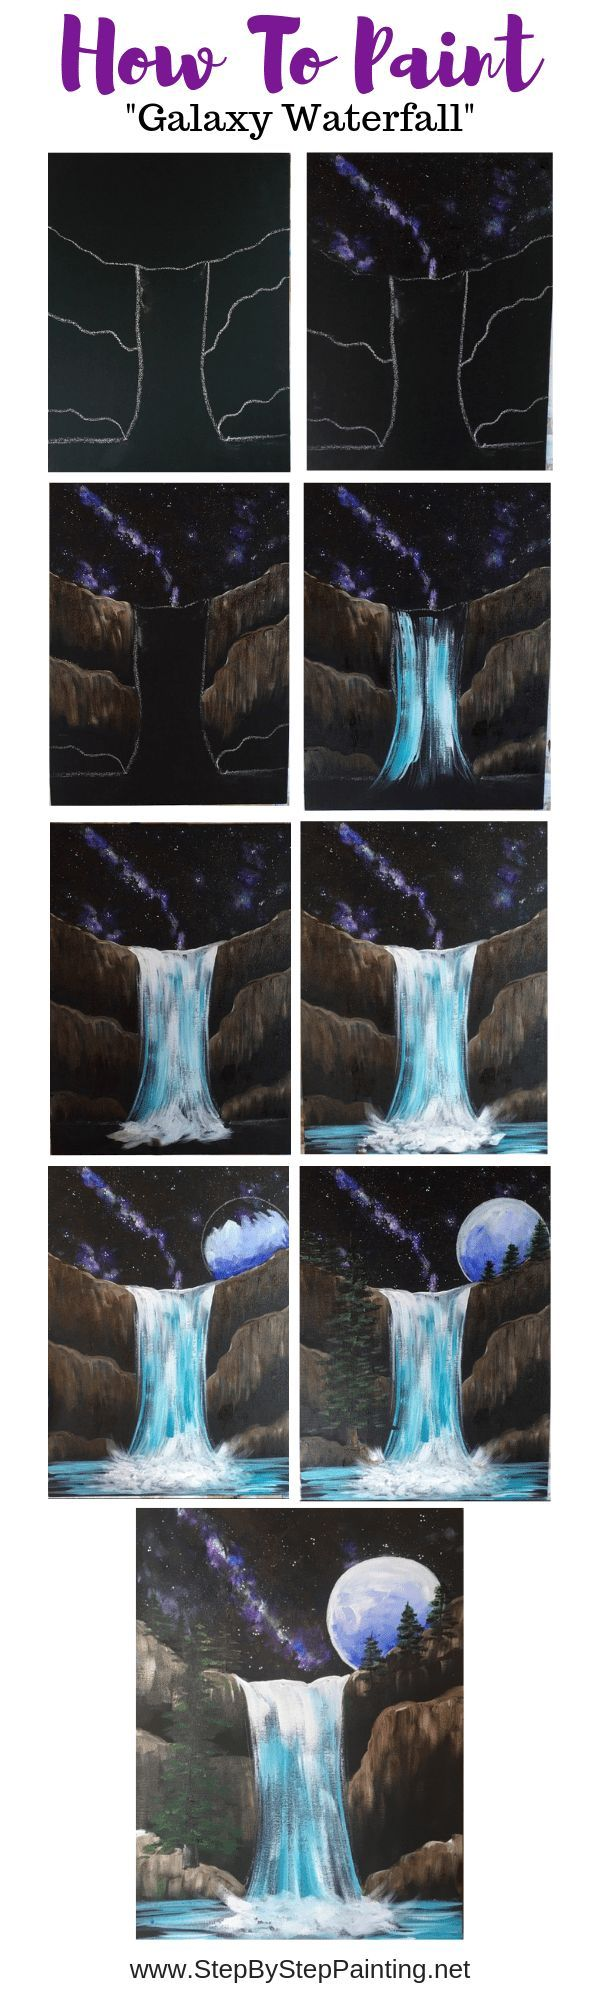 How To Paint A Waterfall With Night Sky